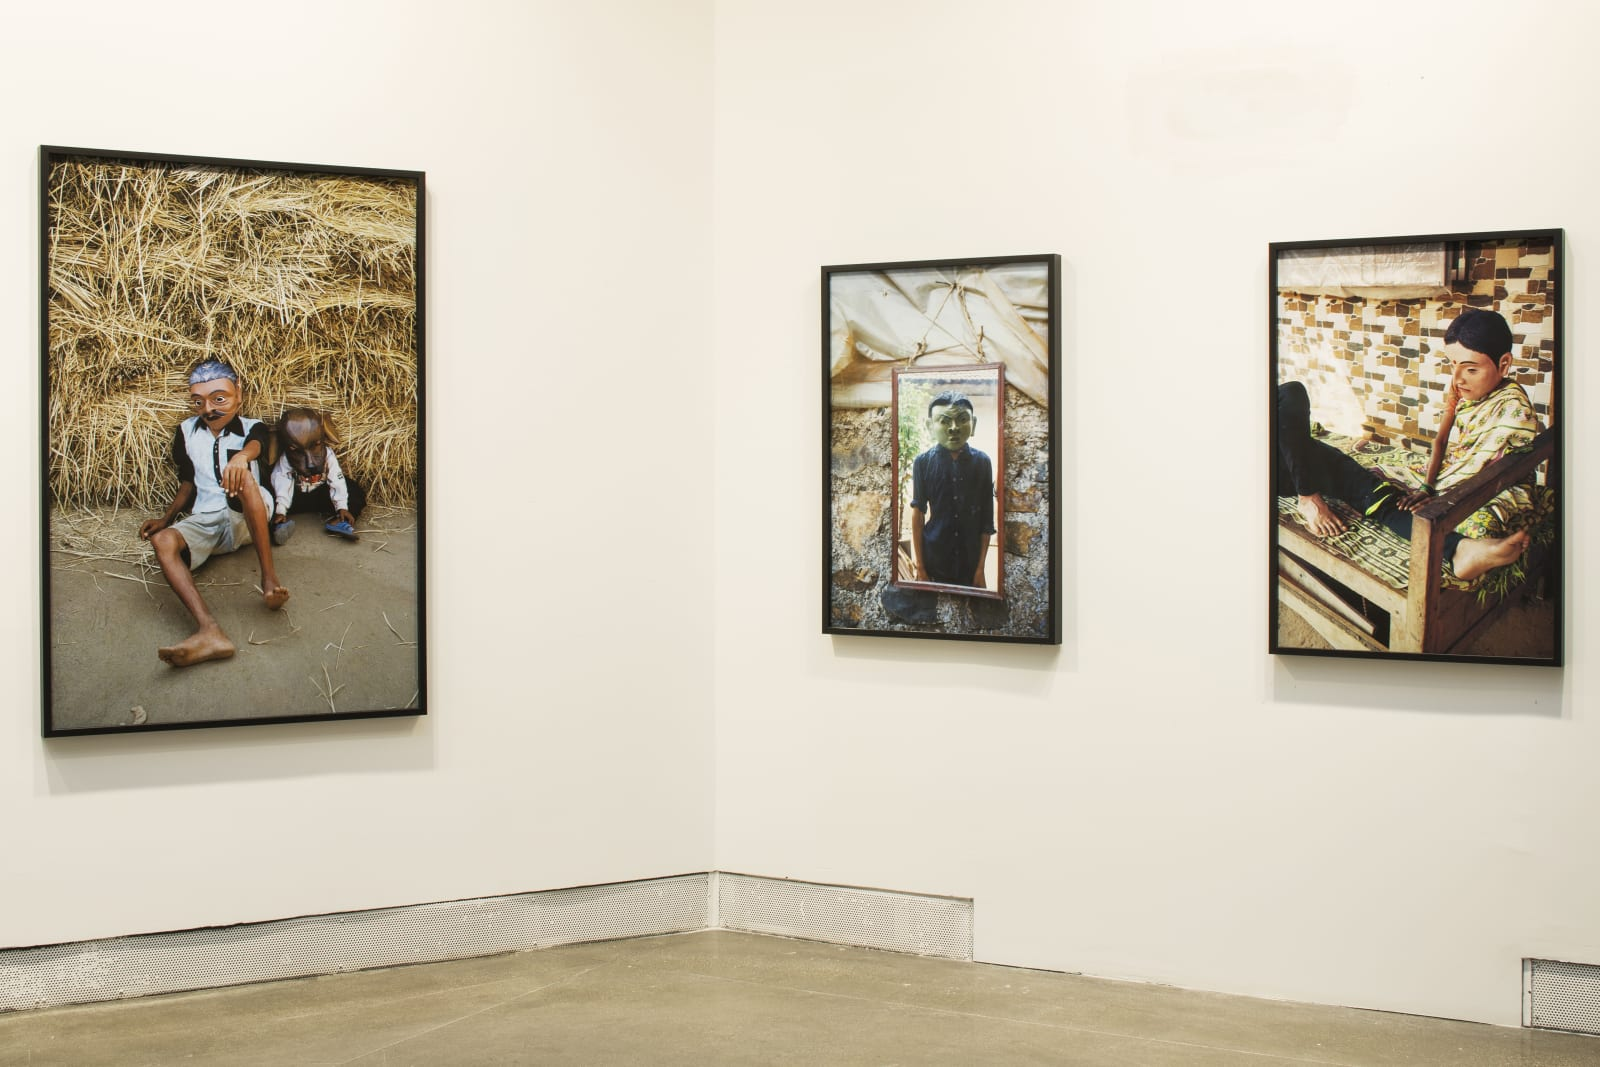 Installation View, Gauri Gill, various works from the series Acts of Appearance, 2015 – ongoing, archival pigment print, 58th International Art Exhibition – Venice Biennale, May You Live In Interesting Times | Photographer: Francesco Gall, May 11 - November 24, 2019